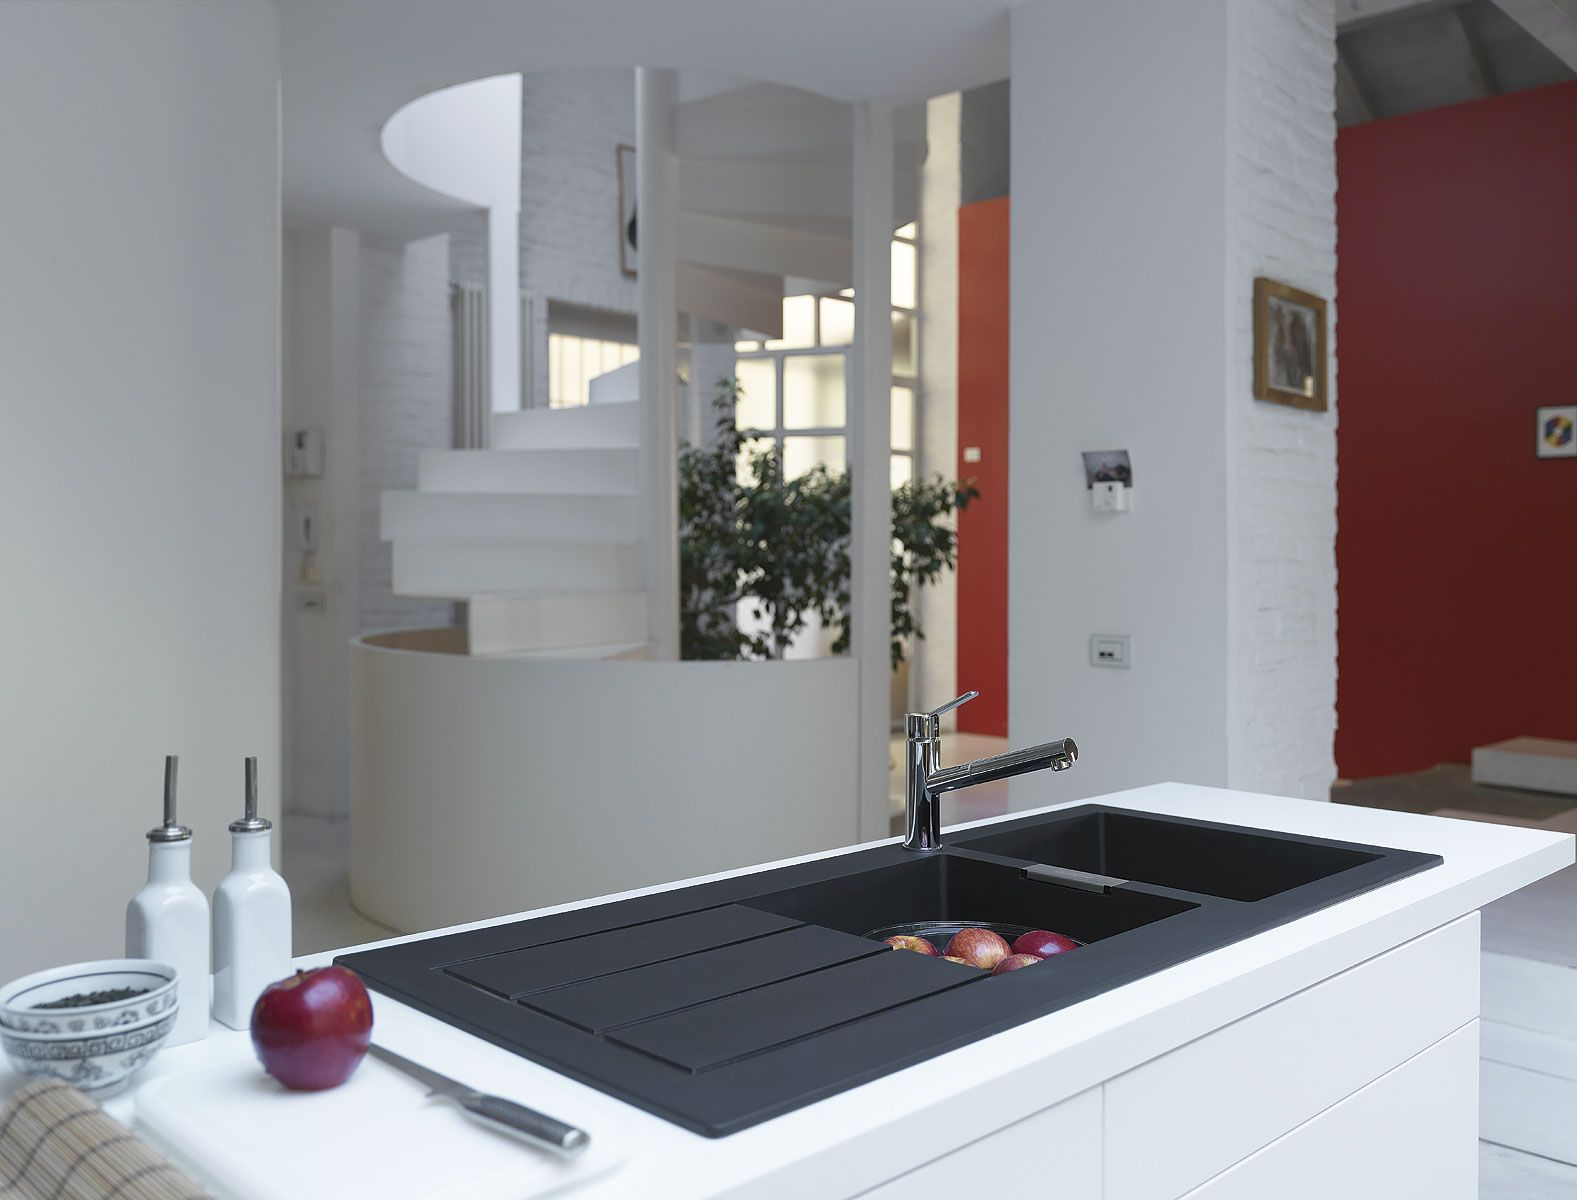 The Franke Sirius Is A Coloured Undermounted Sink Which